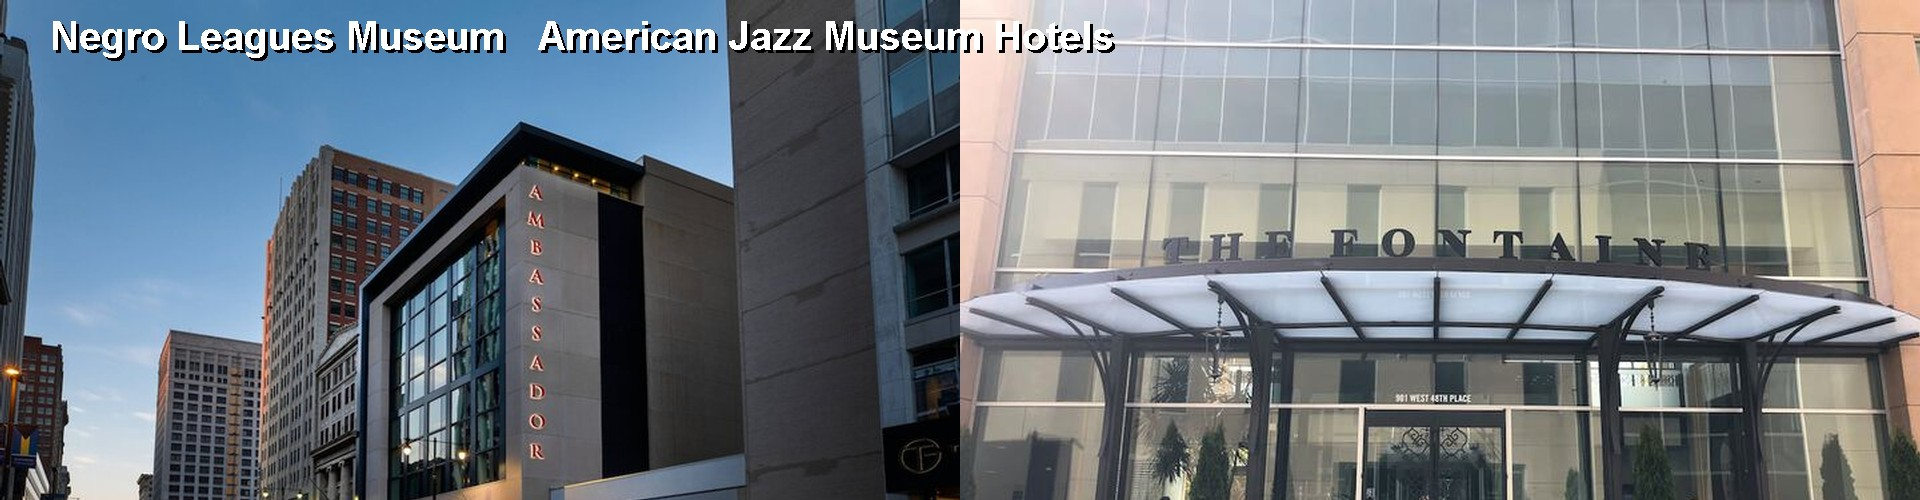 5 Best Hotels near Negro Leagues Museum American Jazz Museum